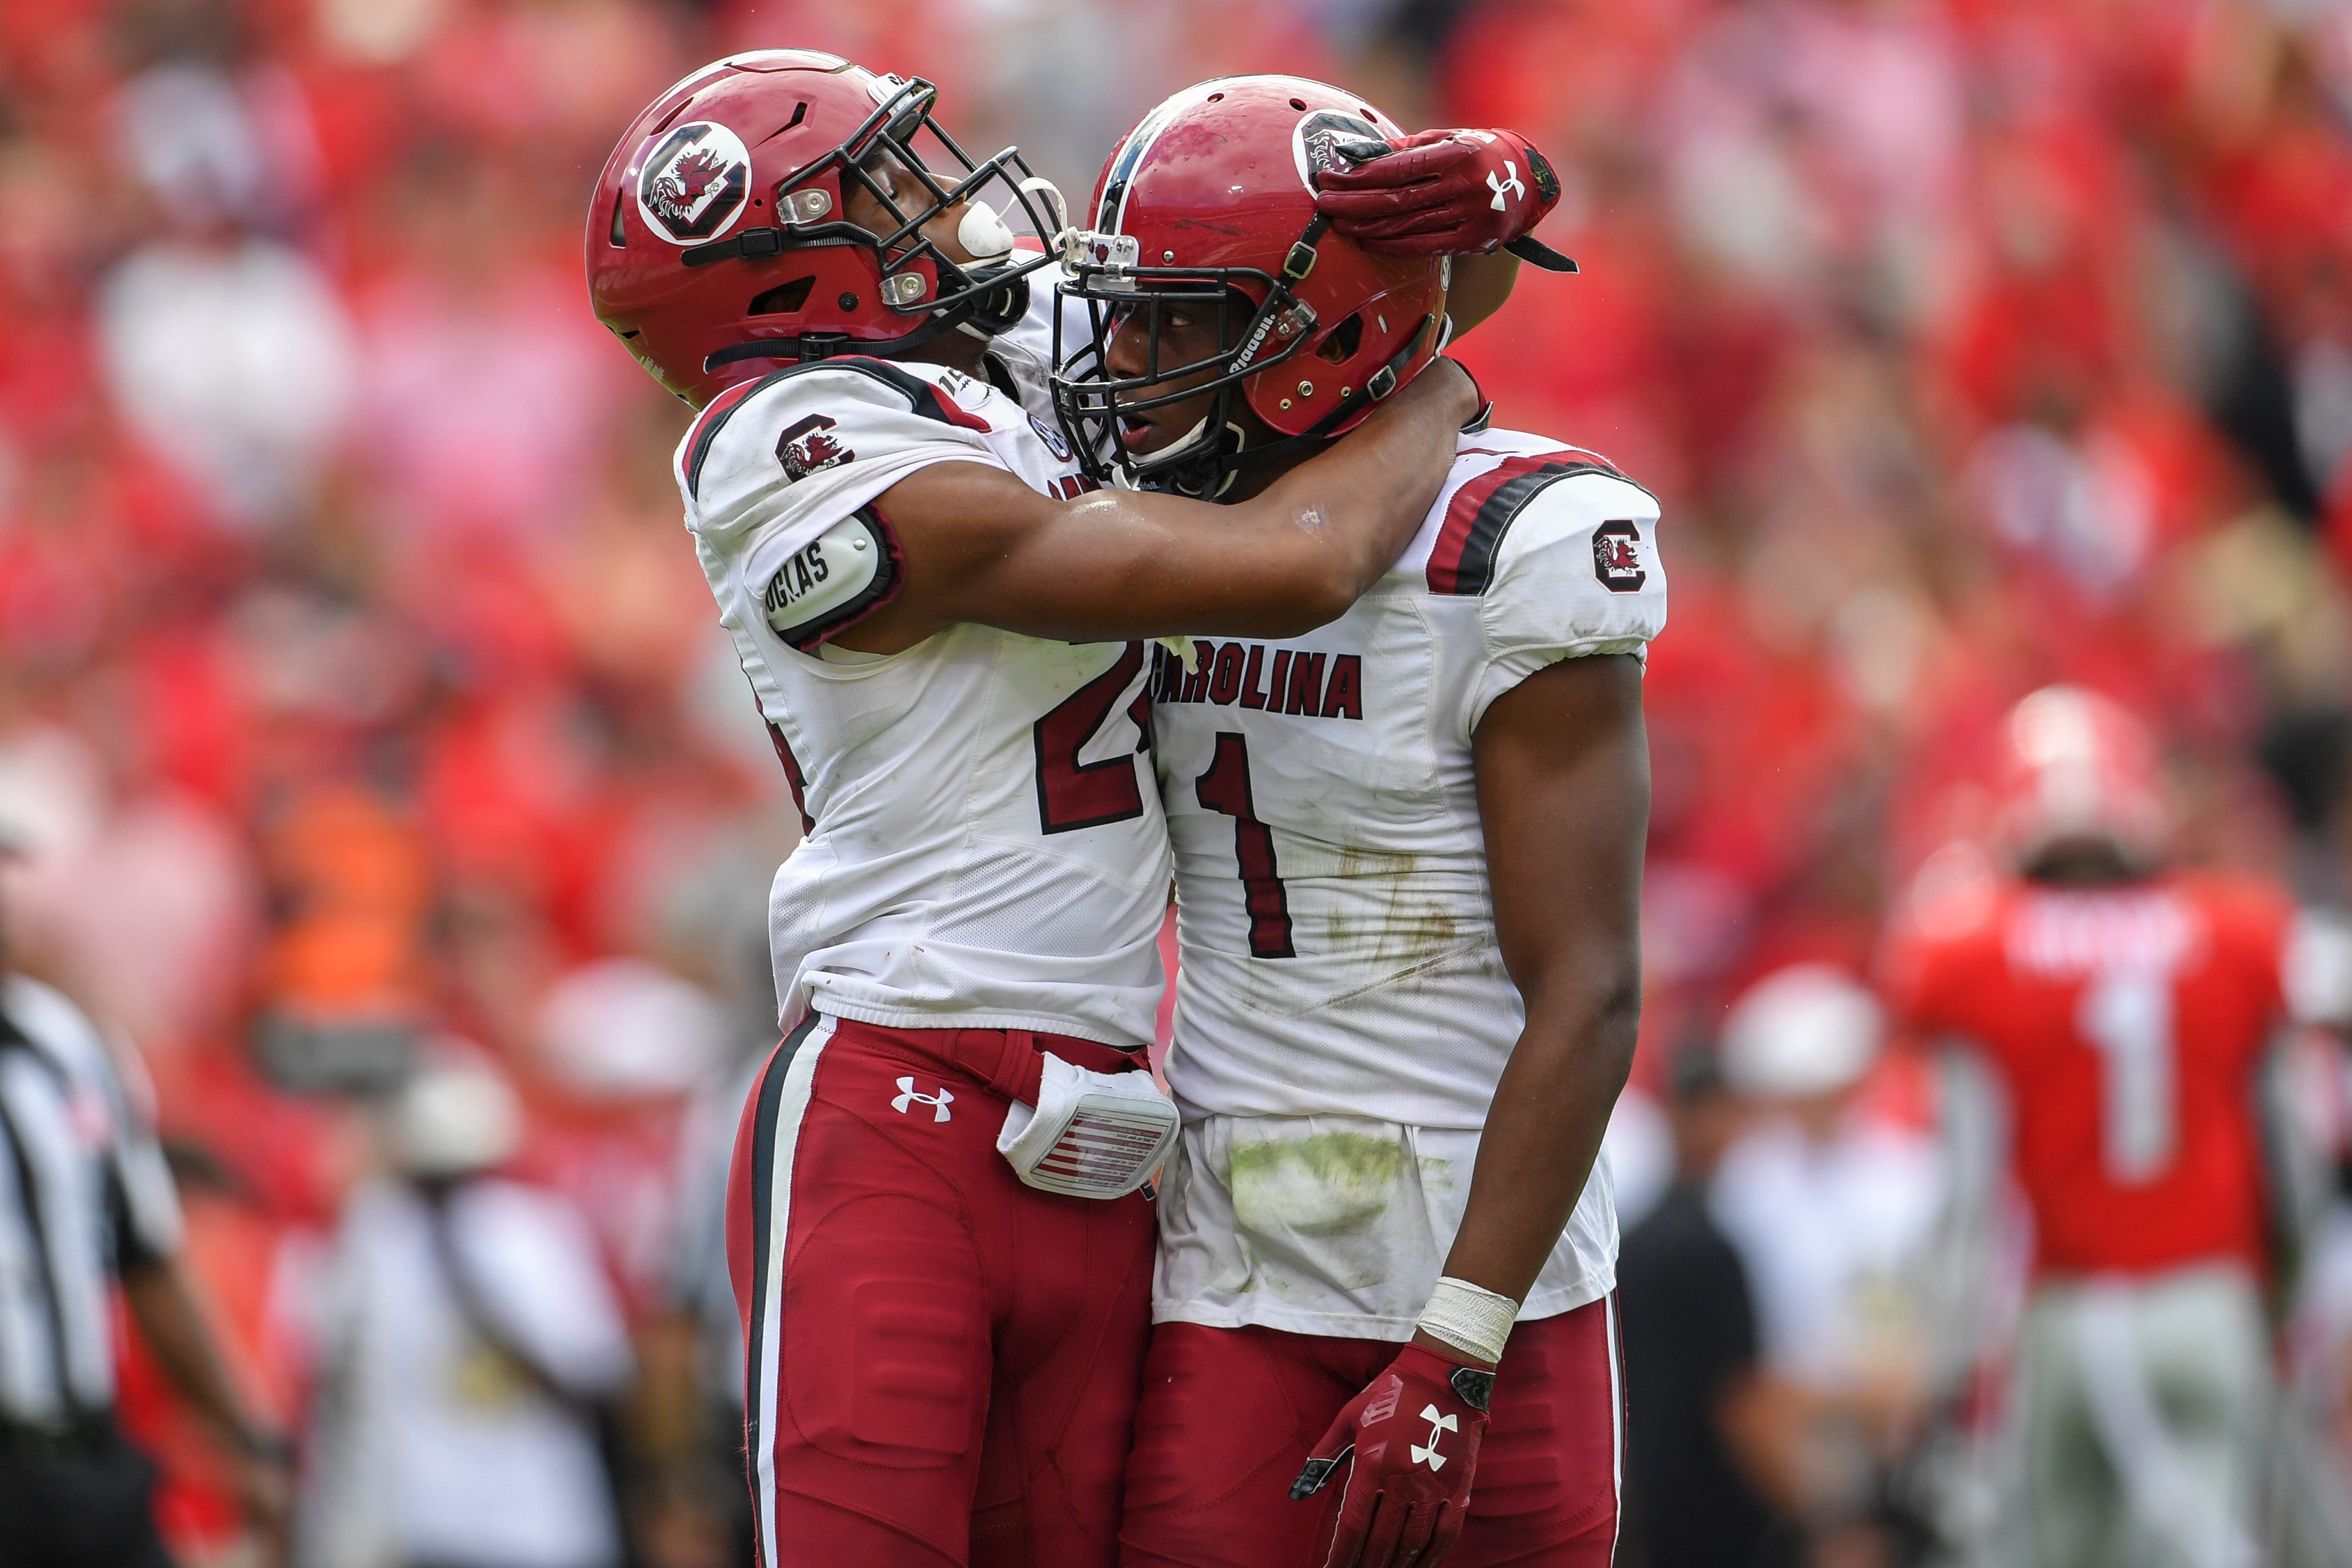 Three South Carolina Defensive Starters Opt Out On Rest Of Season Visit digsouth.com to find the content, contacts and capital you need to succeed and join our member community at dignation.digsouth.com. three south carolina defensive starters